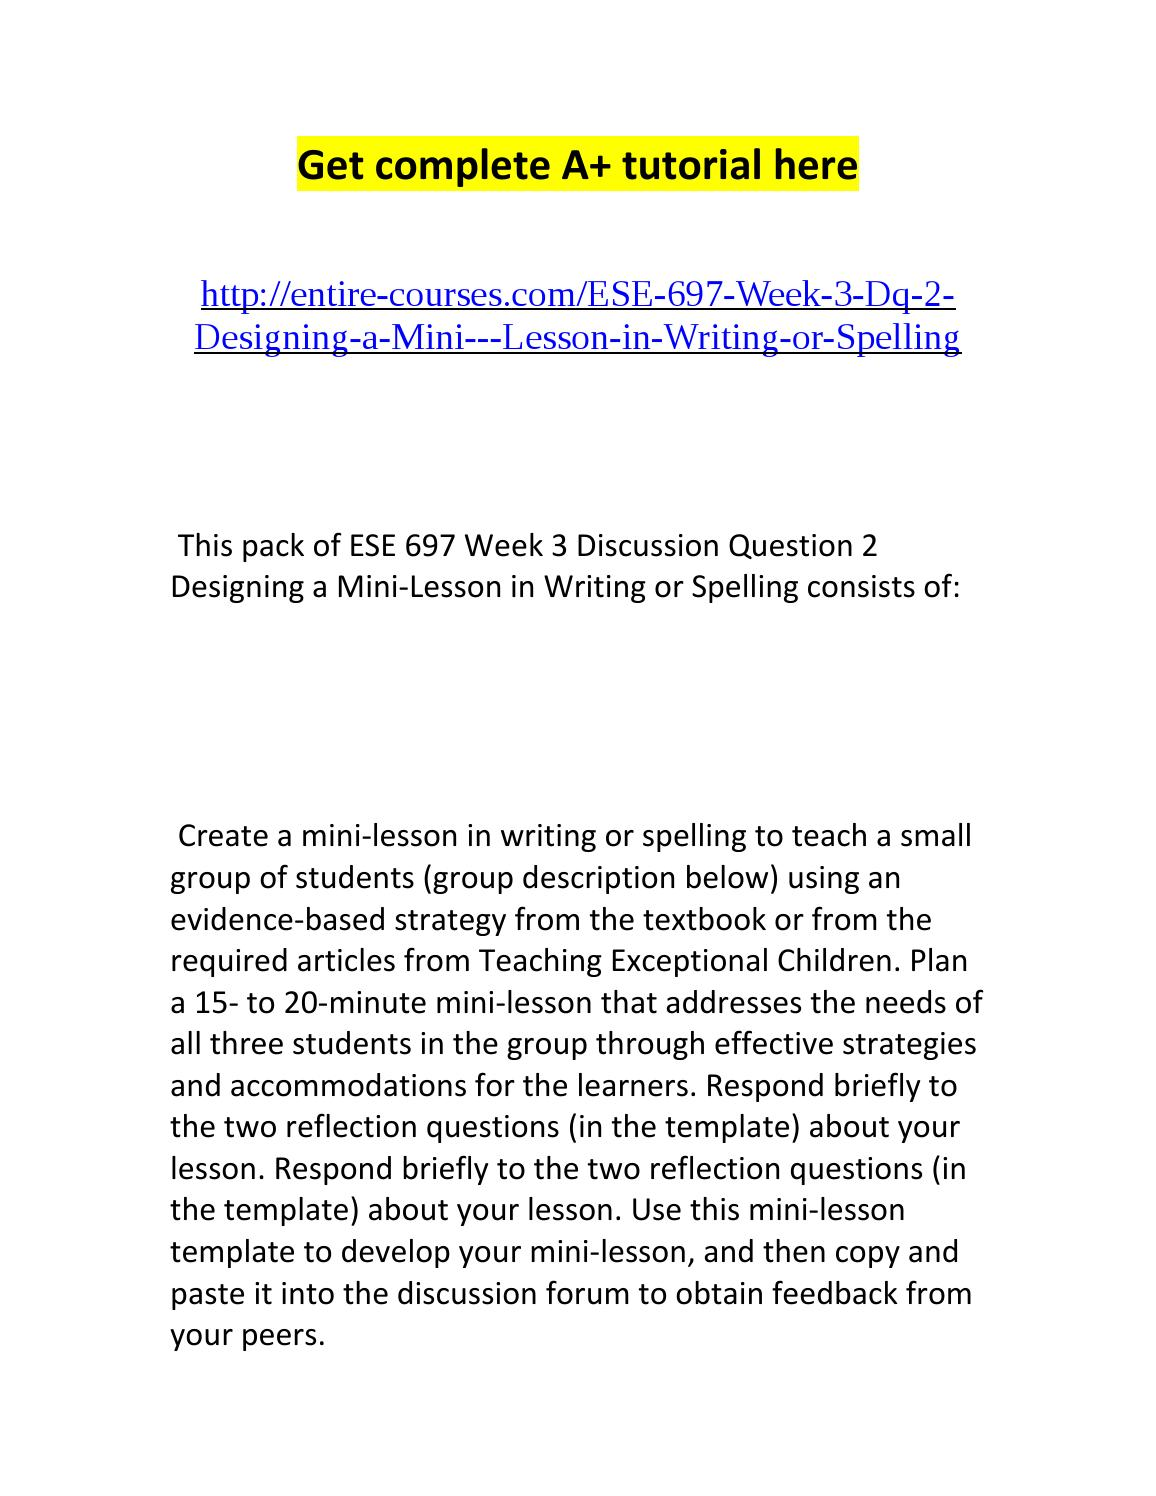 ese 697 week 3 dq 2 designing a mini lesson in writing or spelling